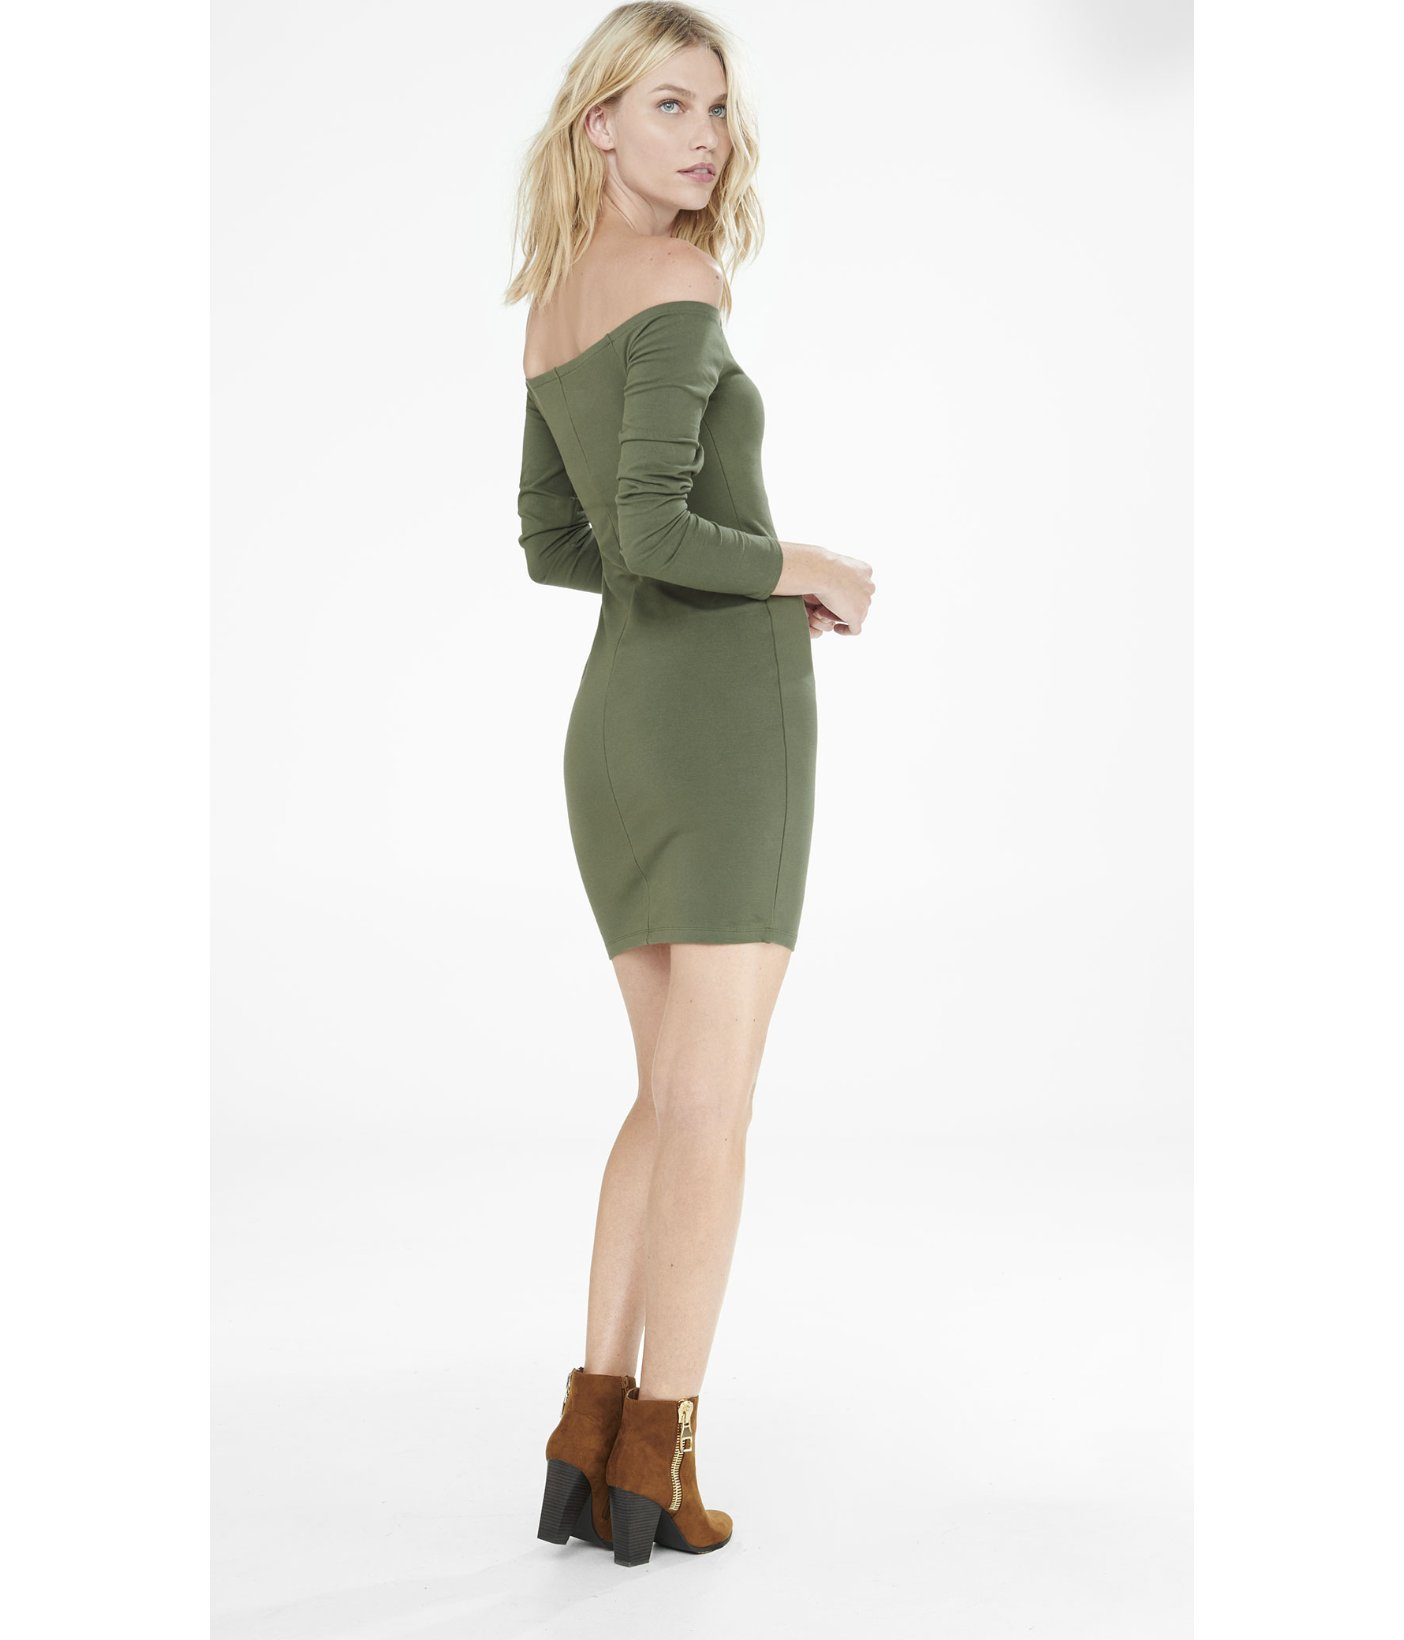 The dress express - Gallery Women S Off The Shoulder Dresses